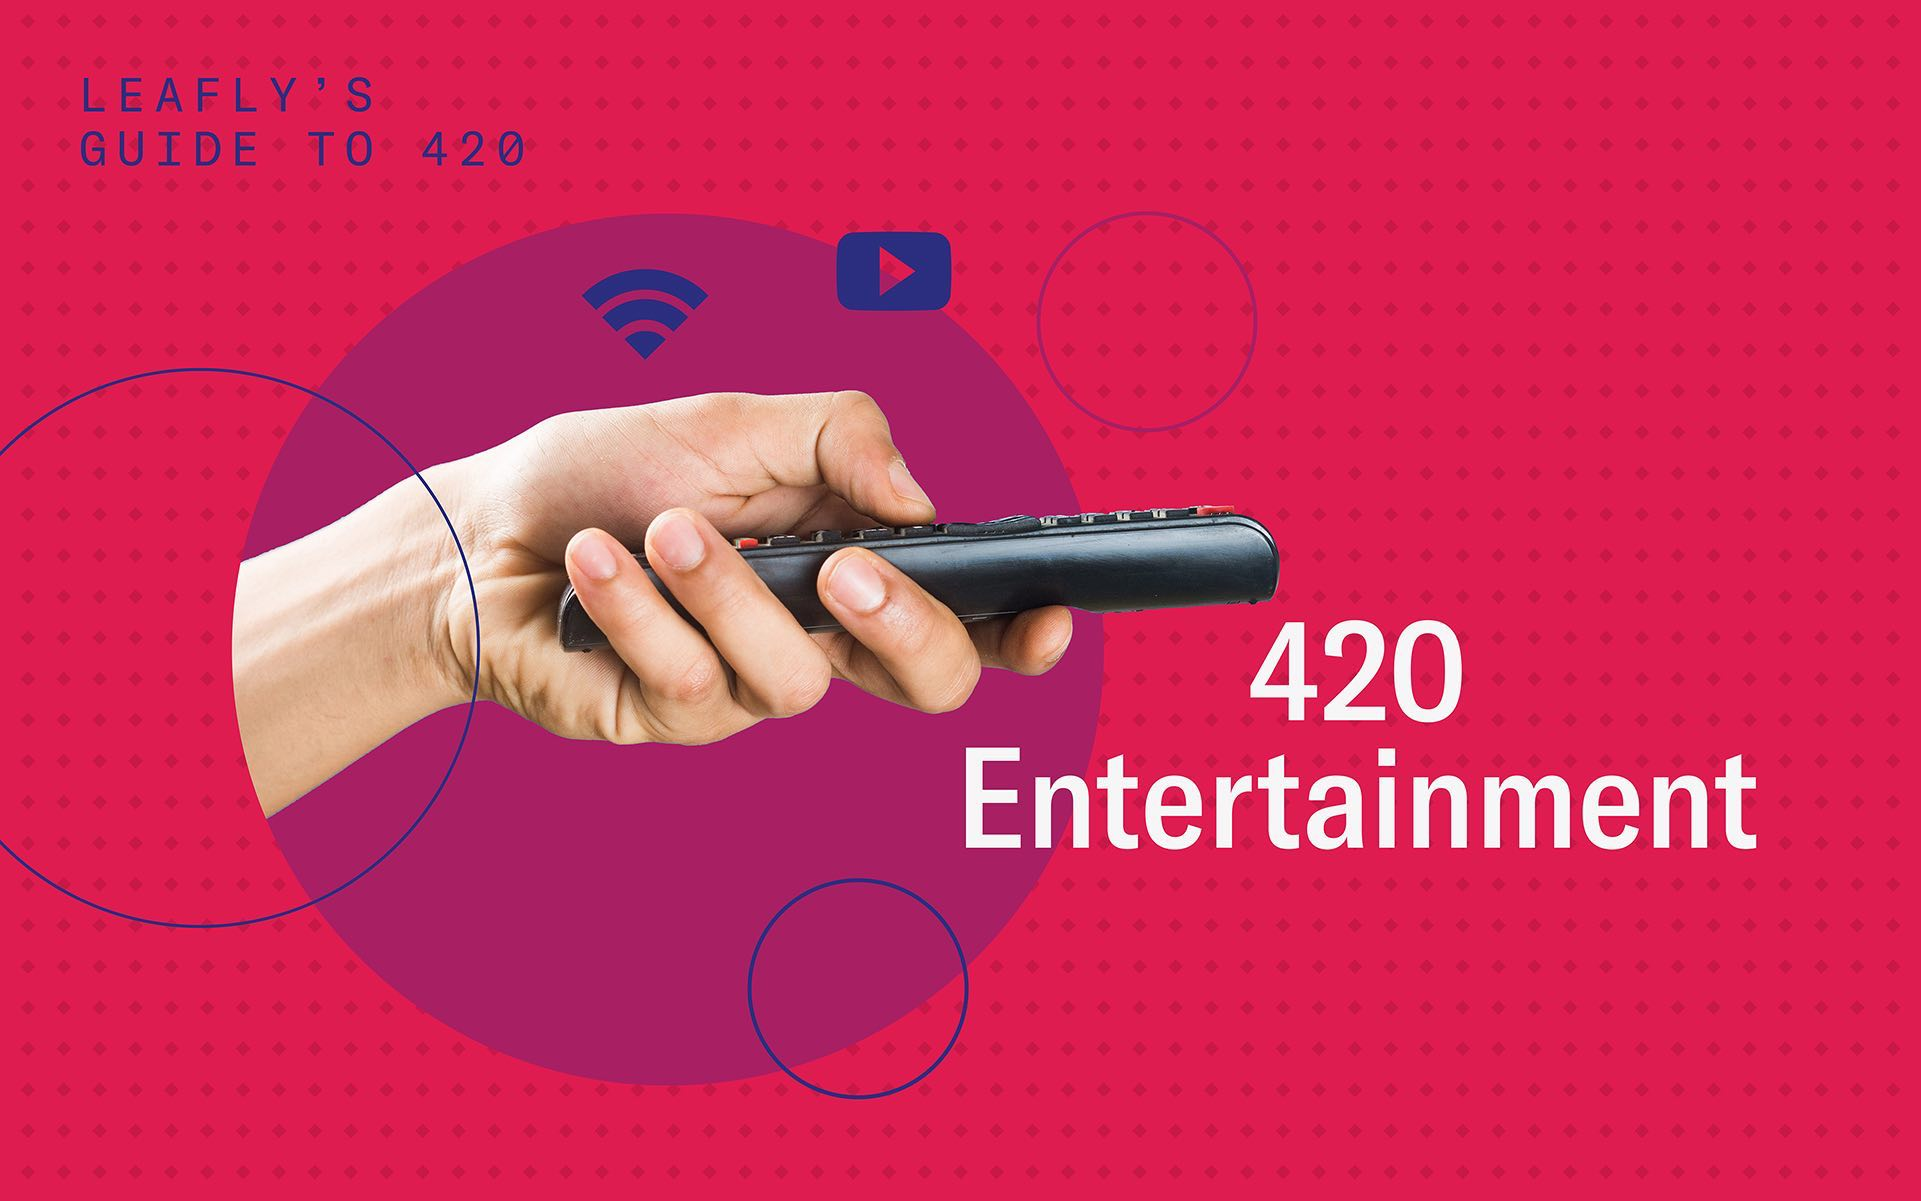 420 marijuana entertainment leafly